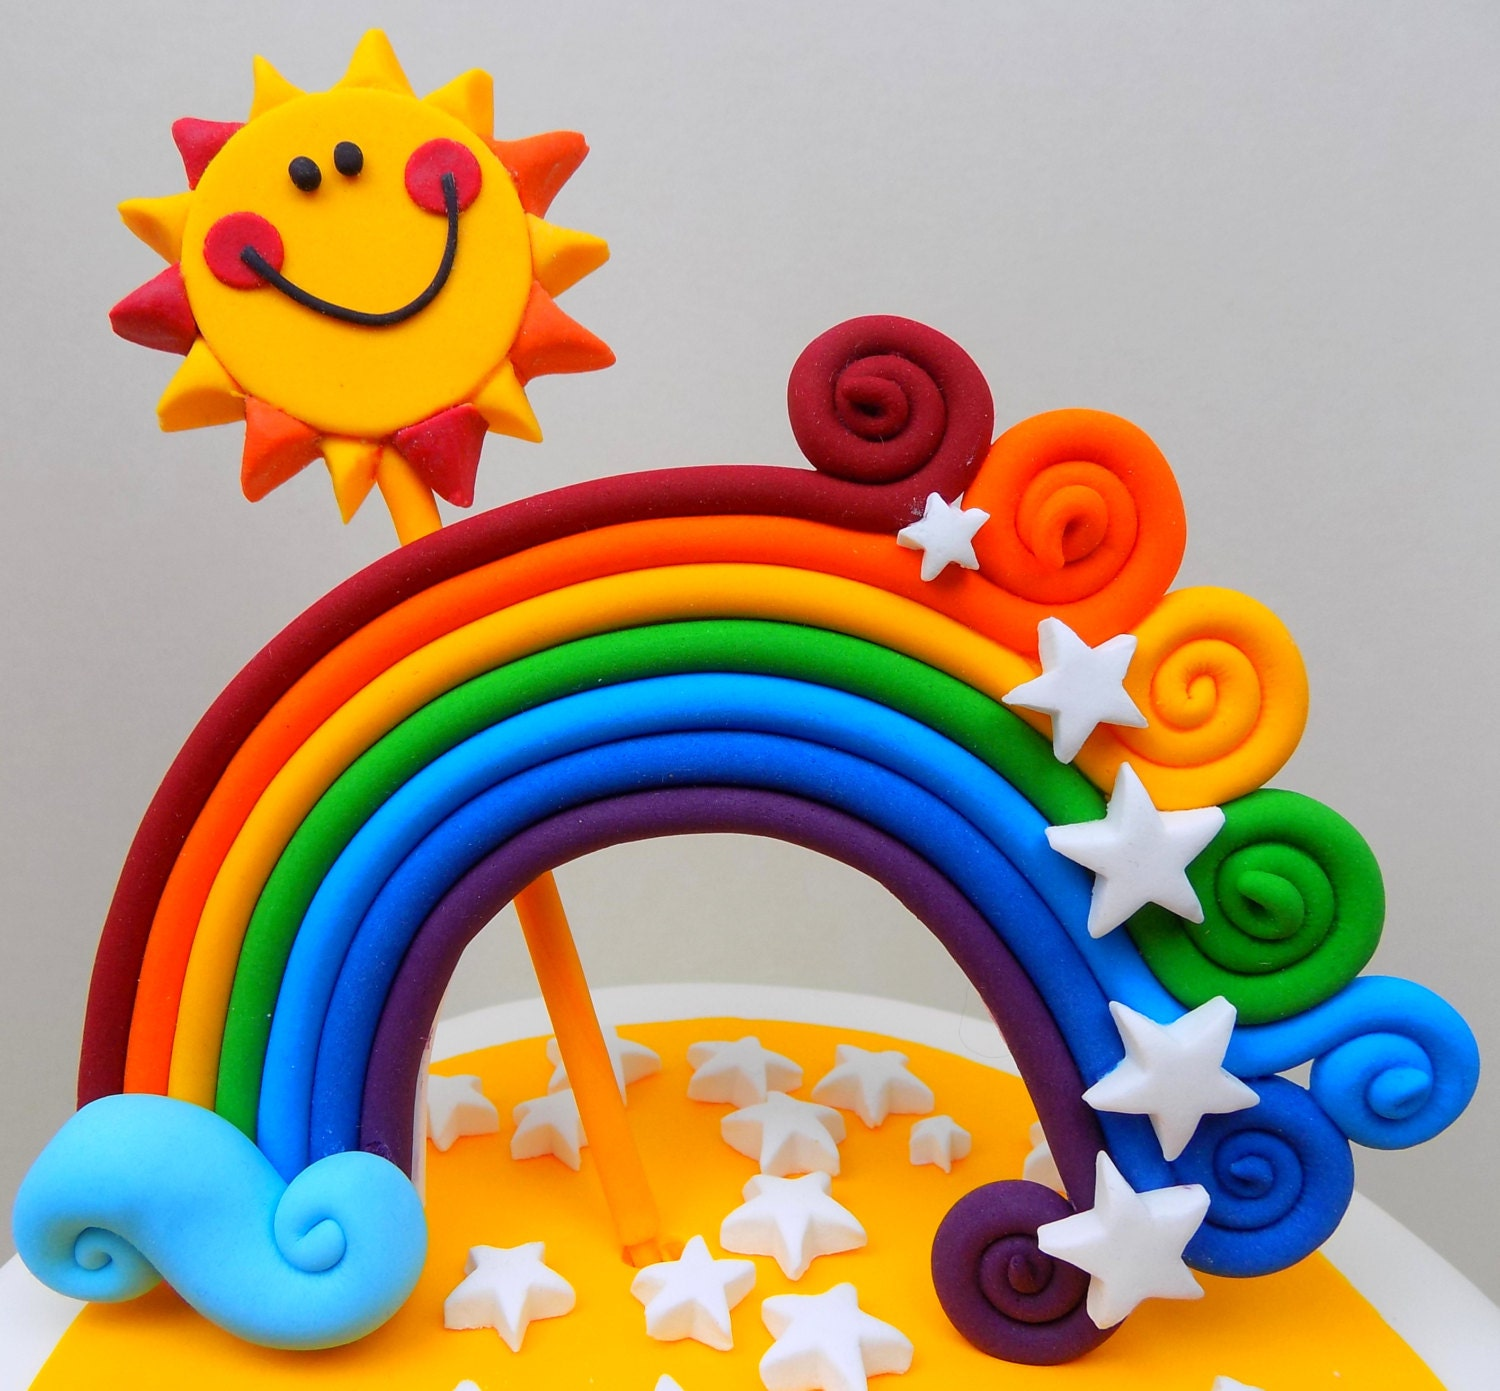 Cake Toppers Uk Next Day Delivery : Personalised RAINBOW and SUN cake topper edible handmade ...